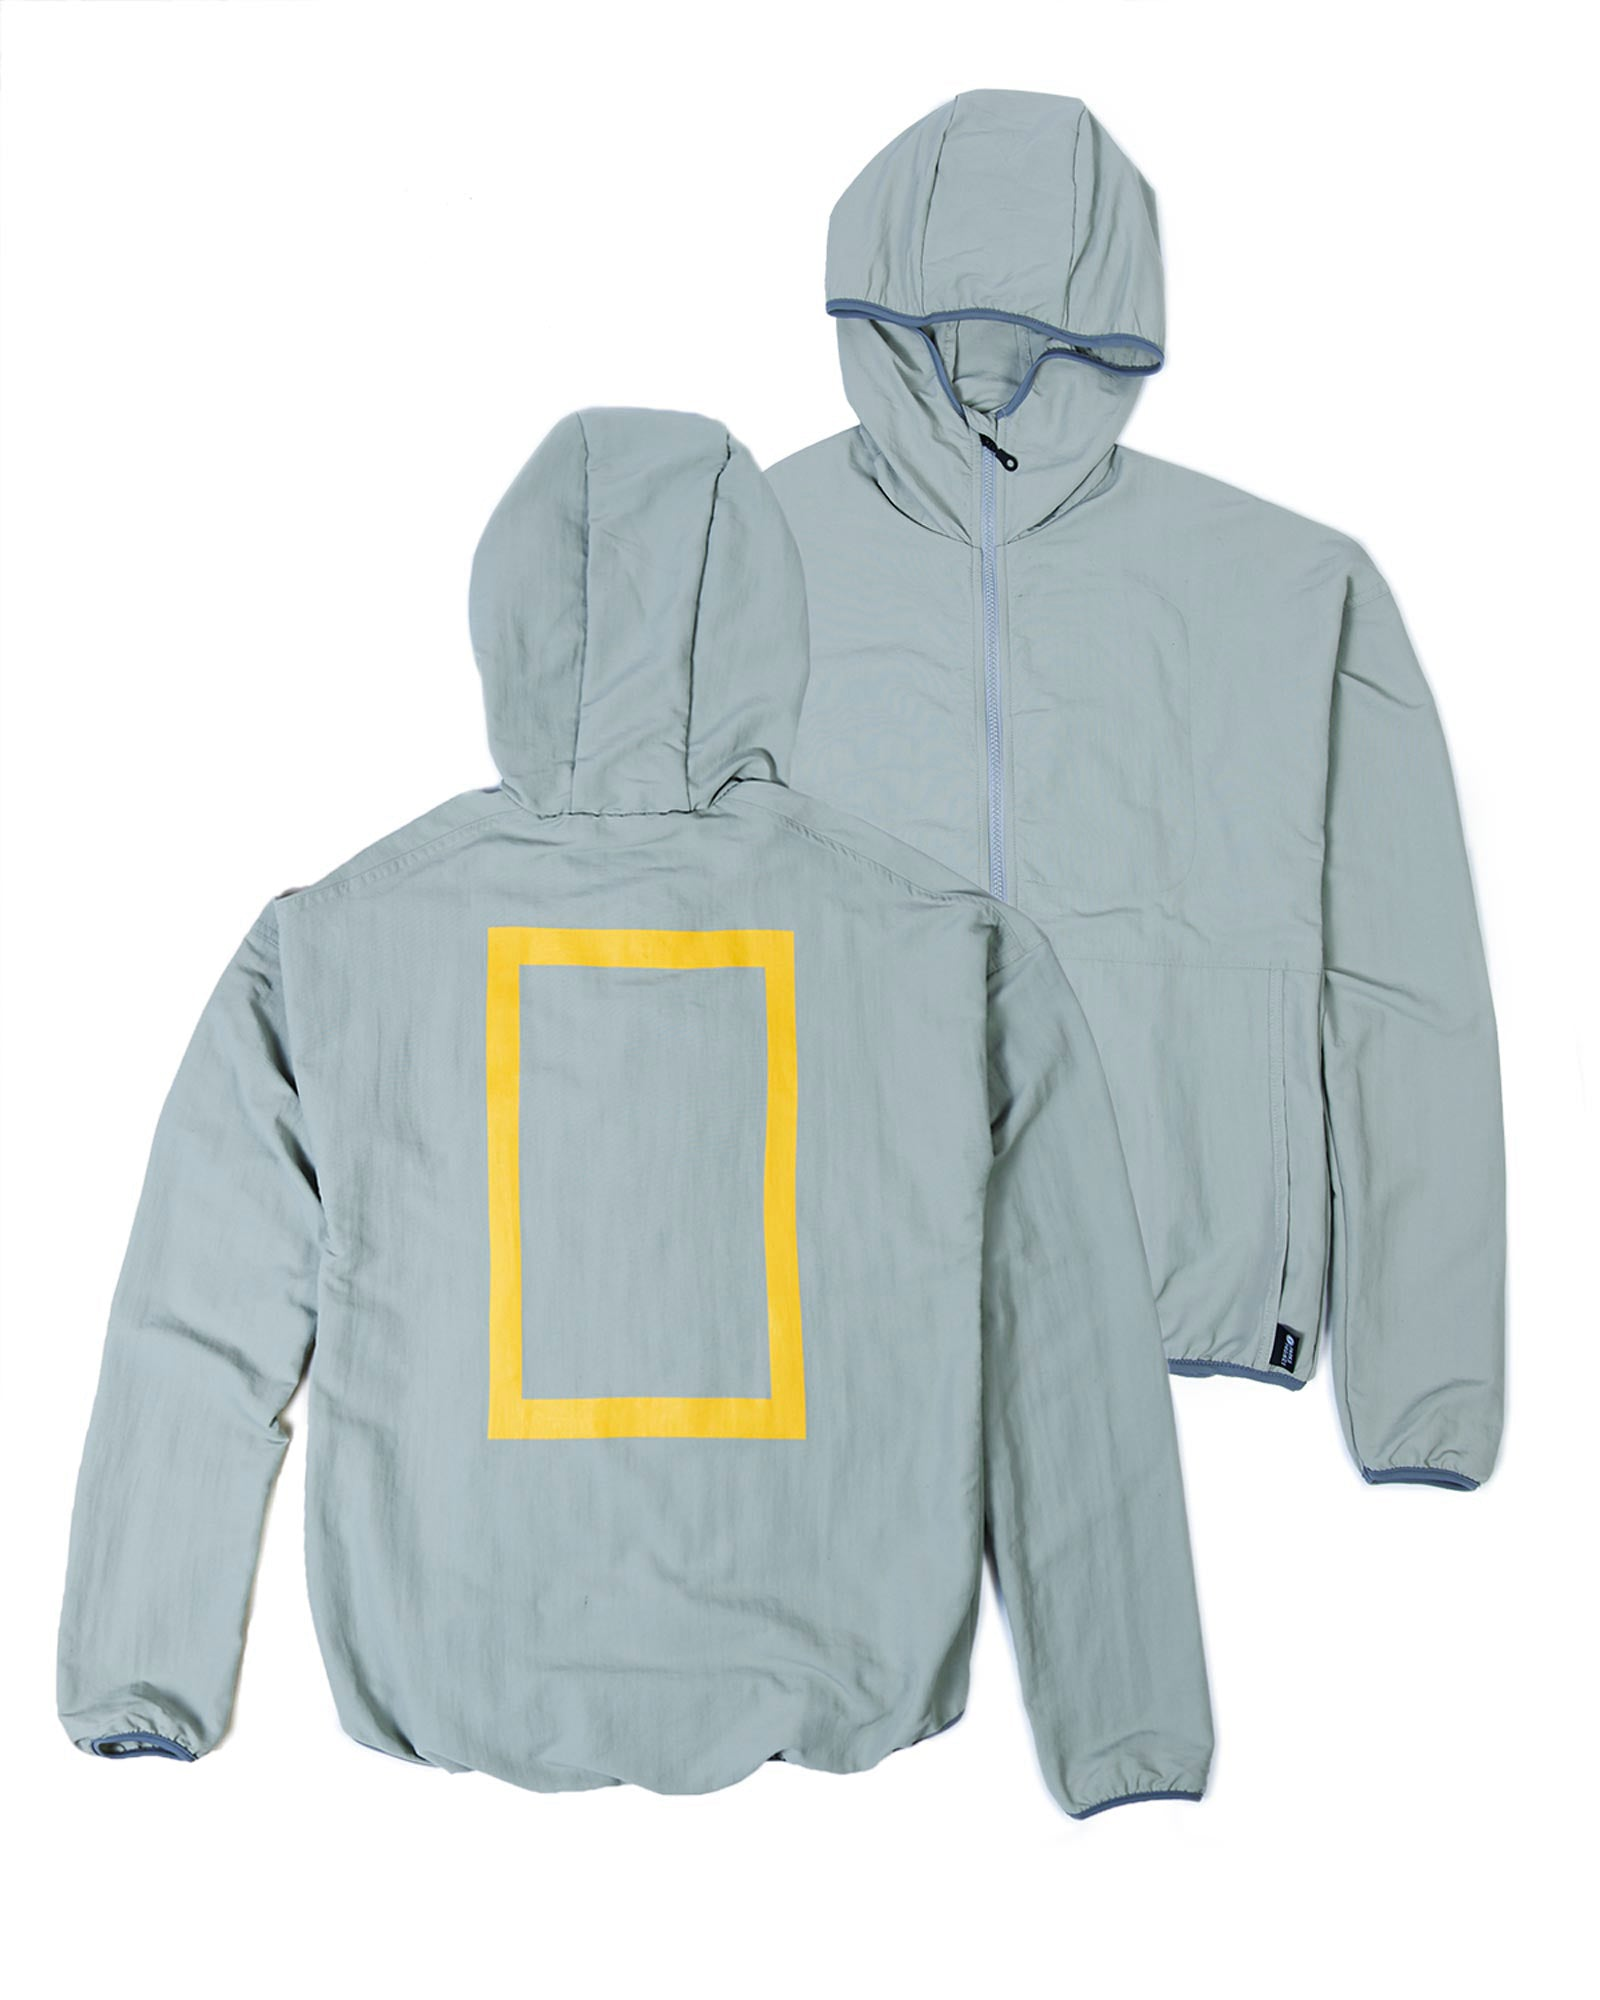 National Geographic x Parks Project Windbreaker | Parks Project | Nat Geo Forever Exploring Capsule